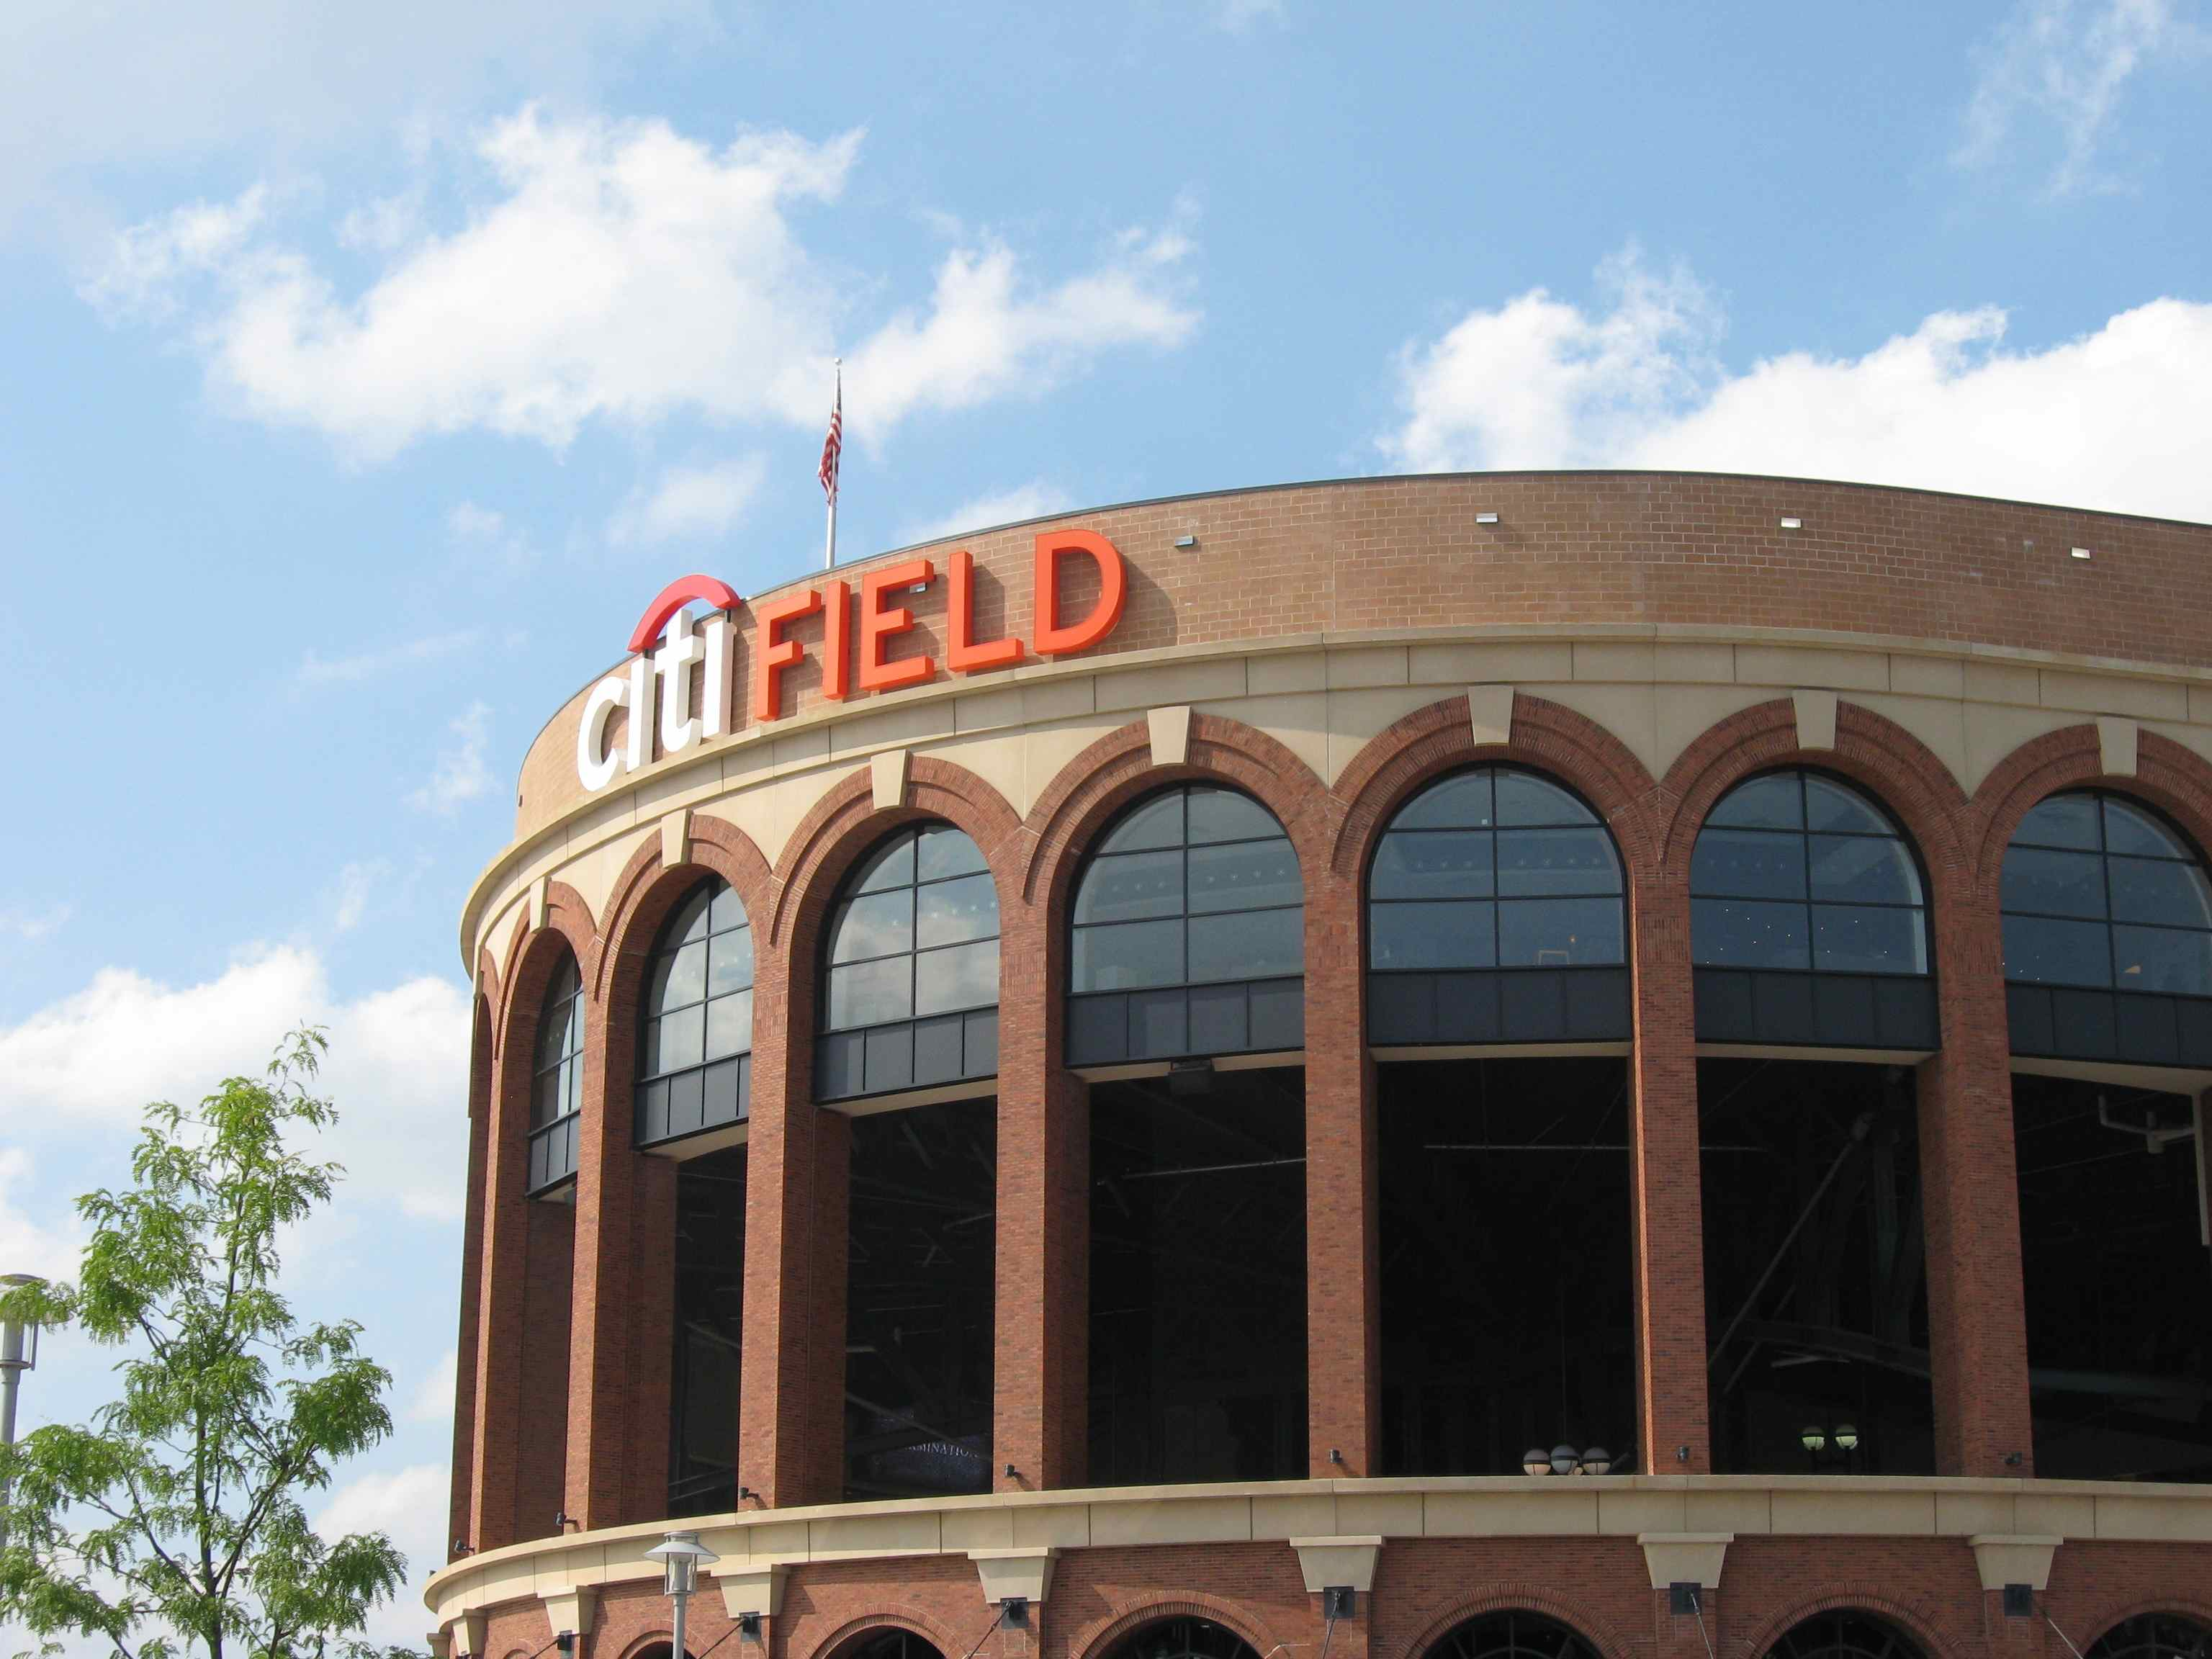 CitiField sign